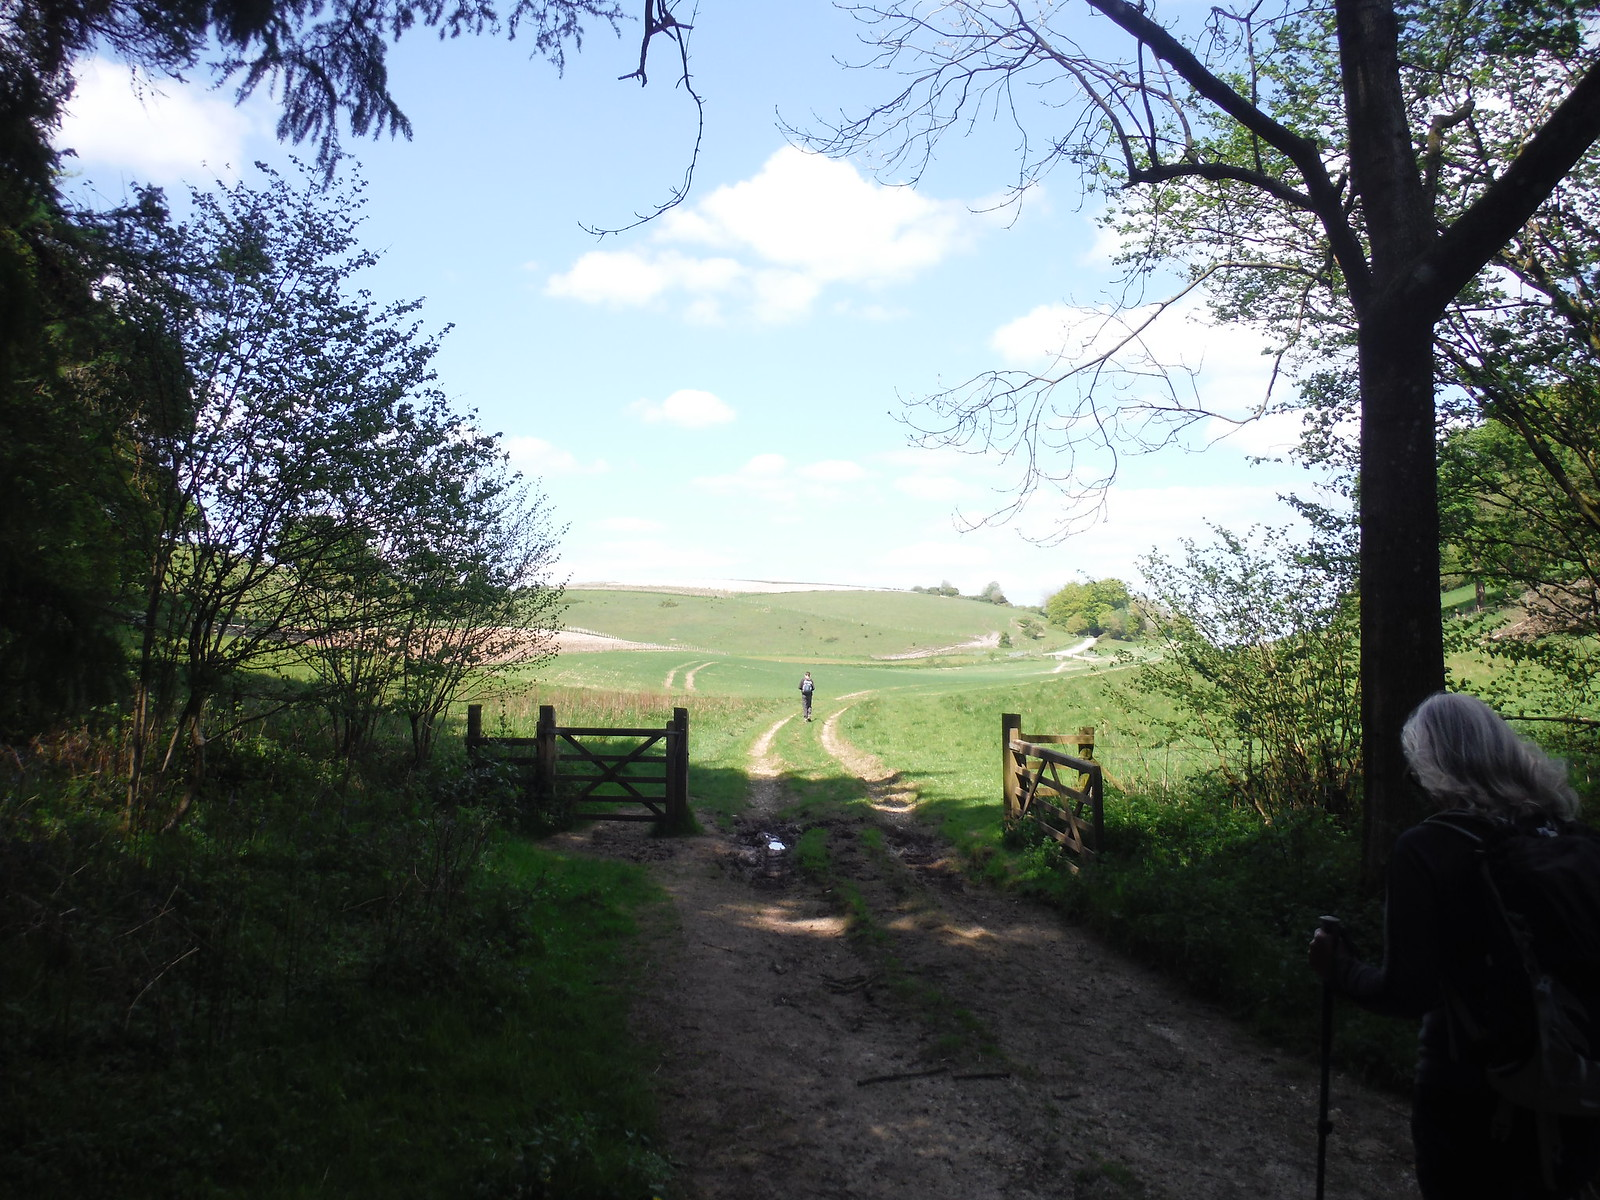 Emerging from Germanleith Copse Valley SWC Walk Rowlands Castle Circular - Extension